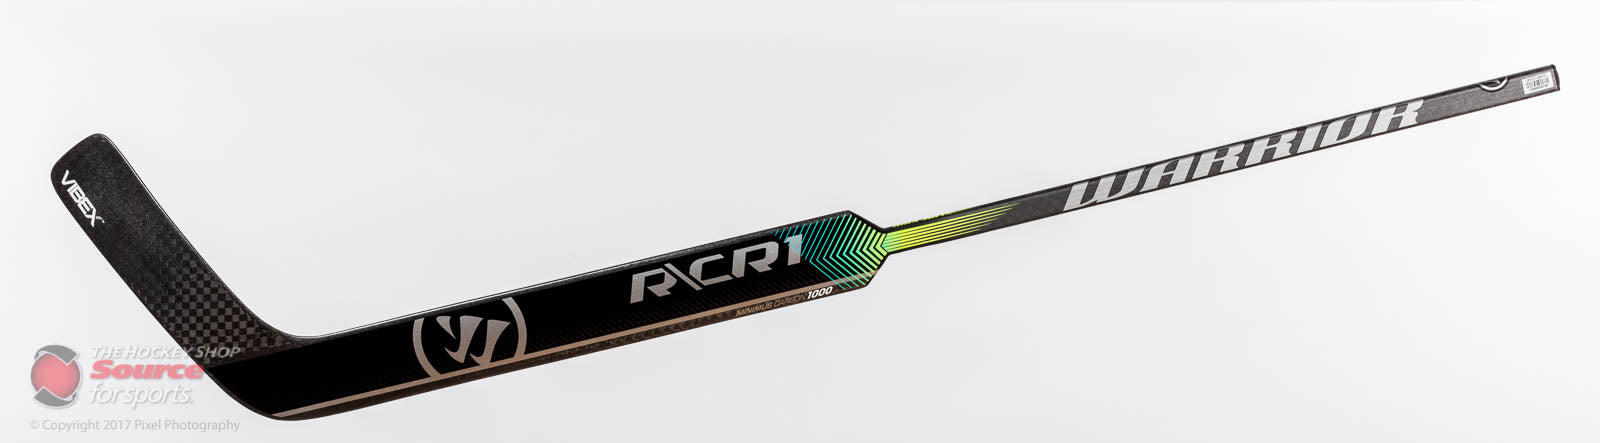 Warrior Ritual CR Composite Goal Sticks